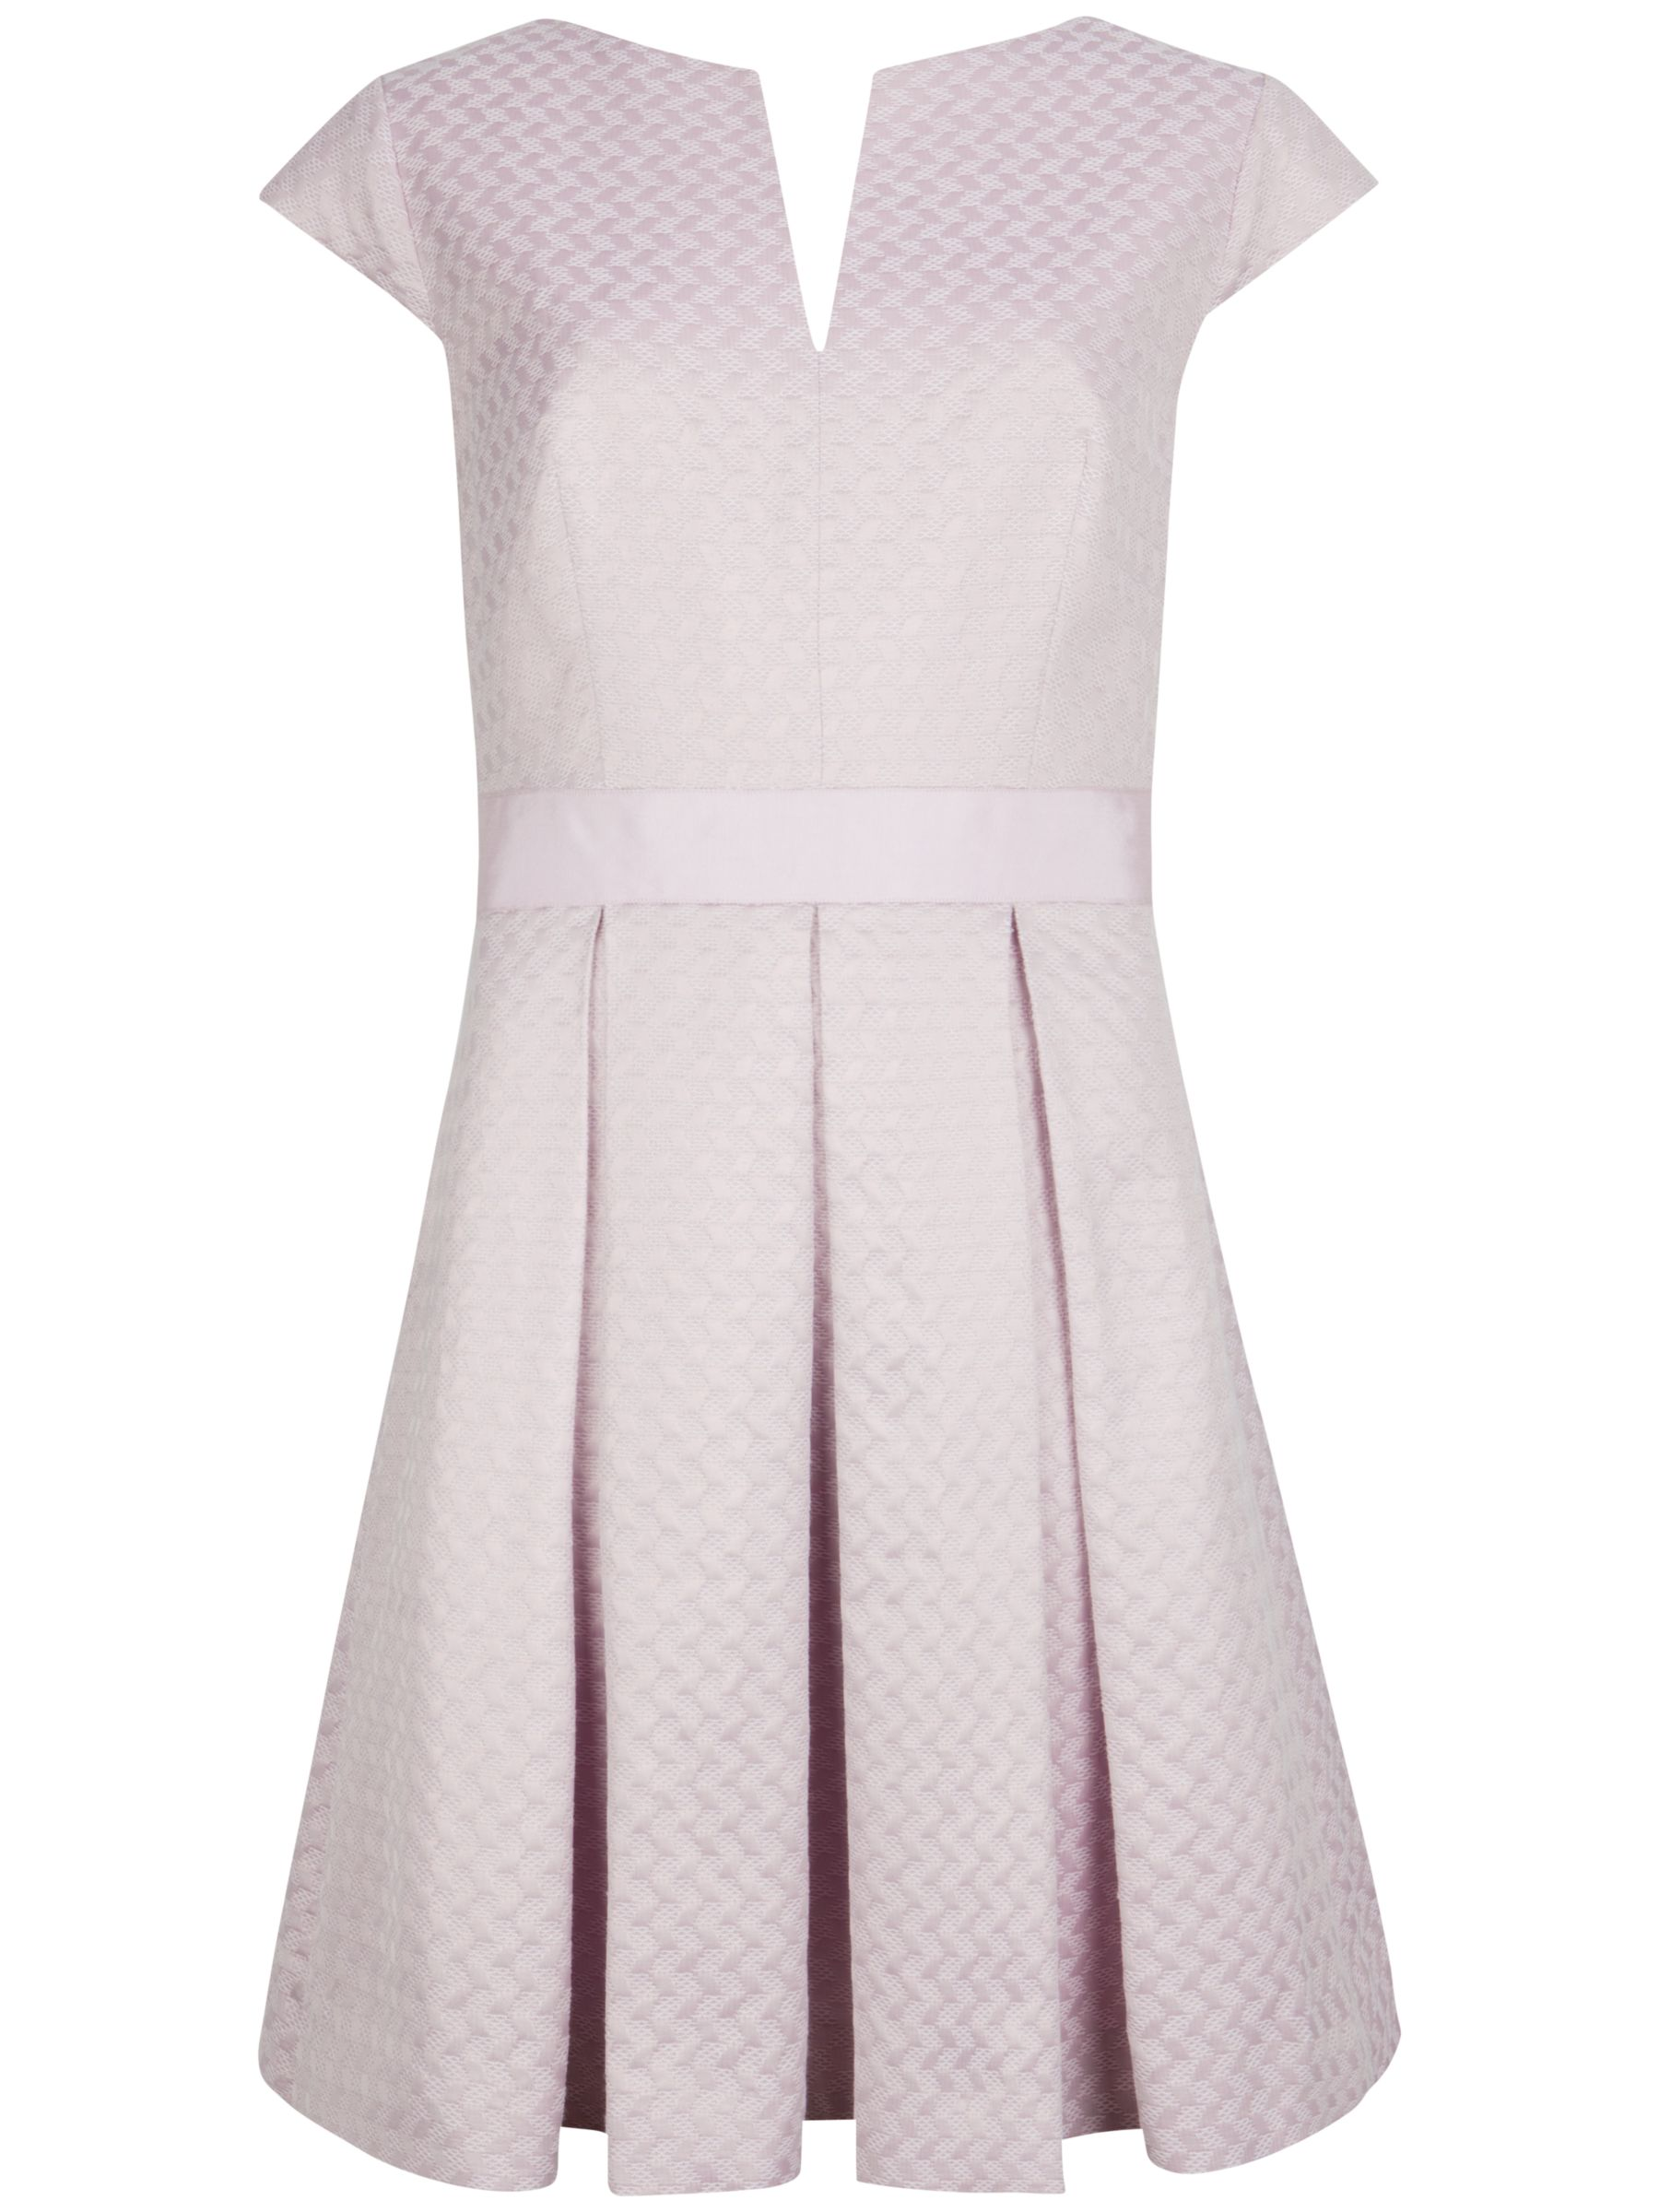 ted baker jacquard dress light purple, ted, baker, jacquard, dress, light, purple, ted baker, 5|4|3|2|1|0, women, womens dresses, gifts, wedding, wedding clothing, female guests, fashion magazine, womenswear, men, brands l-z, 1937168